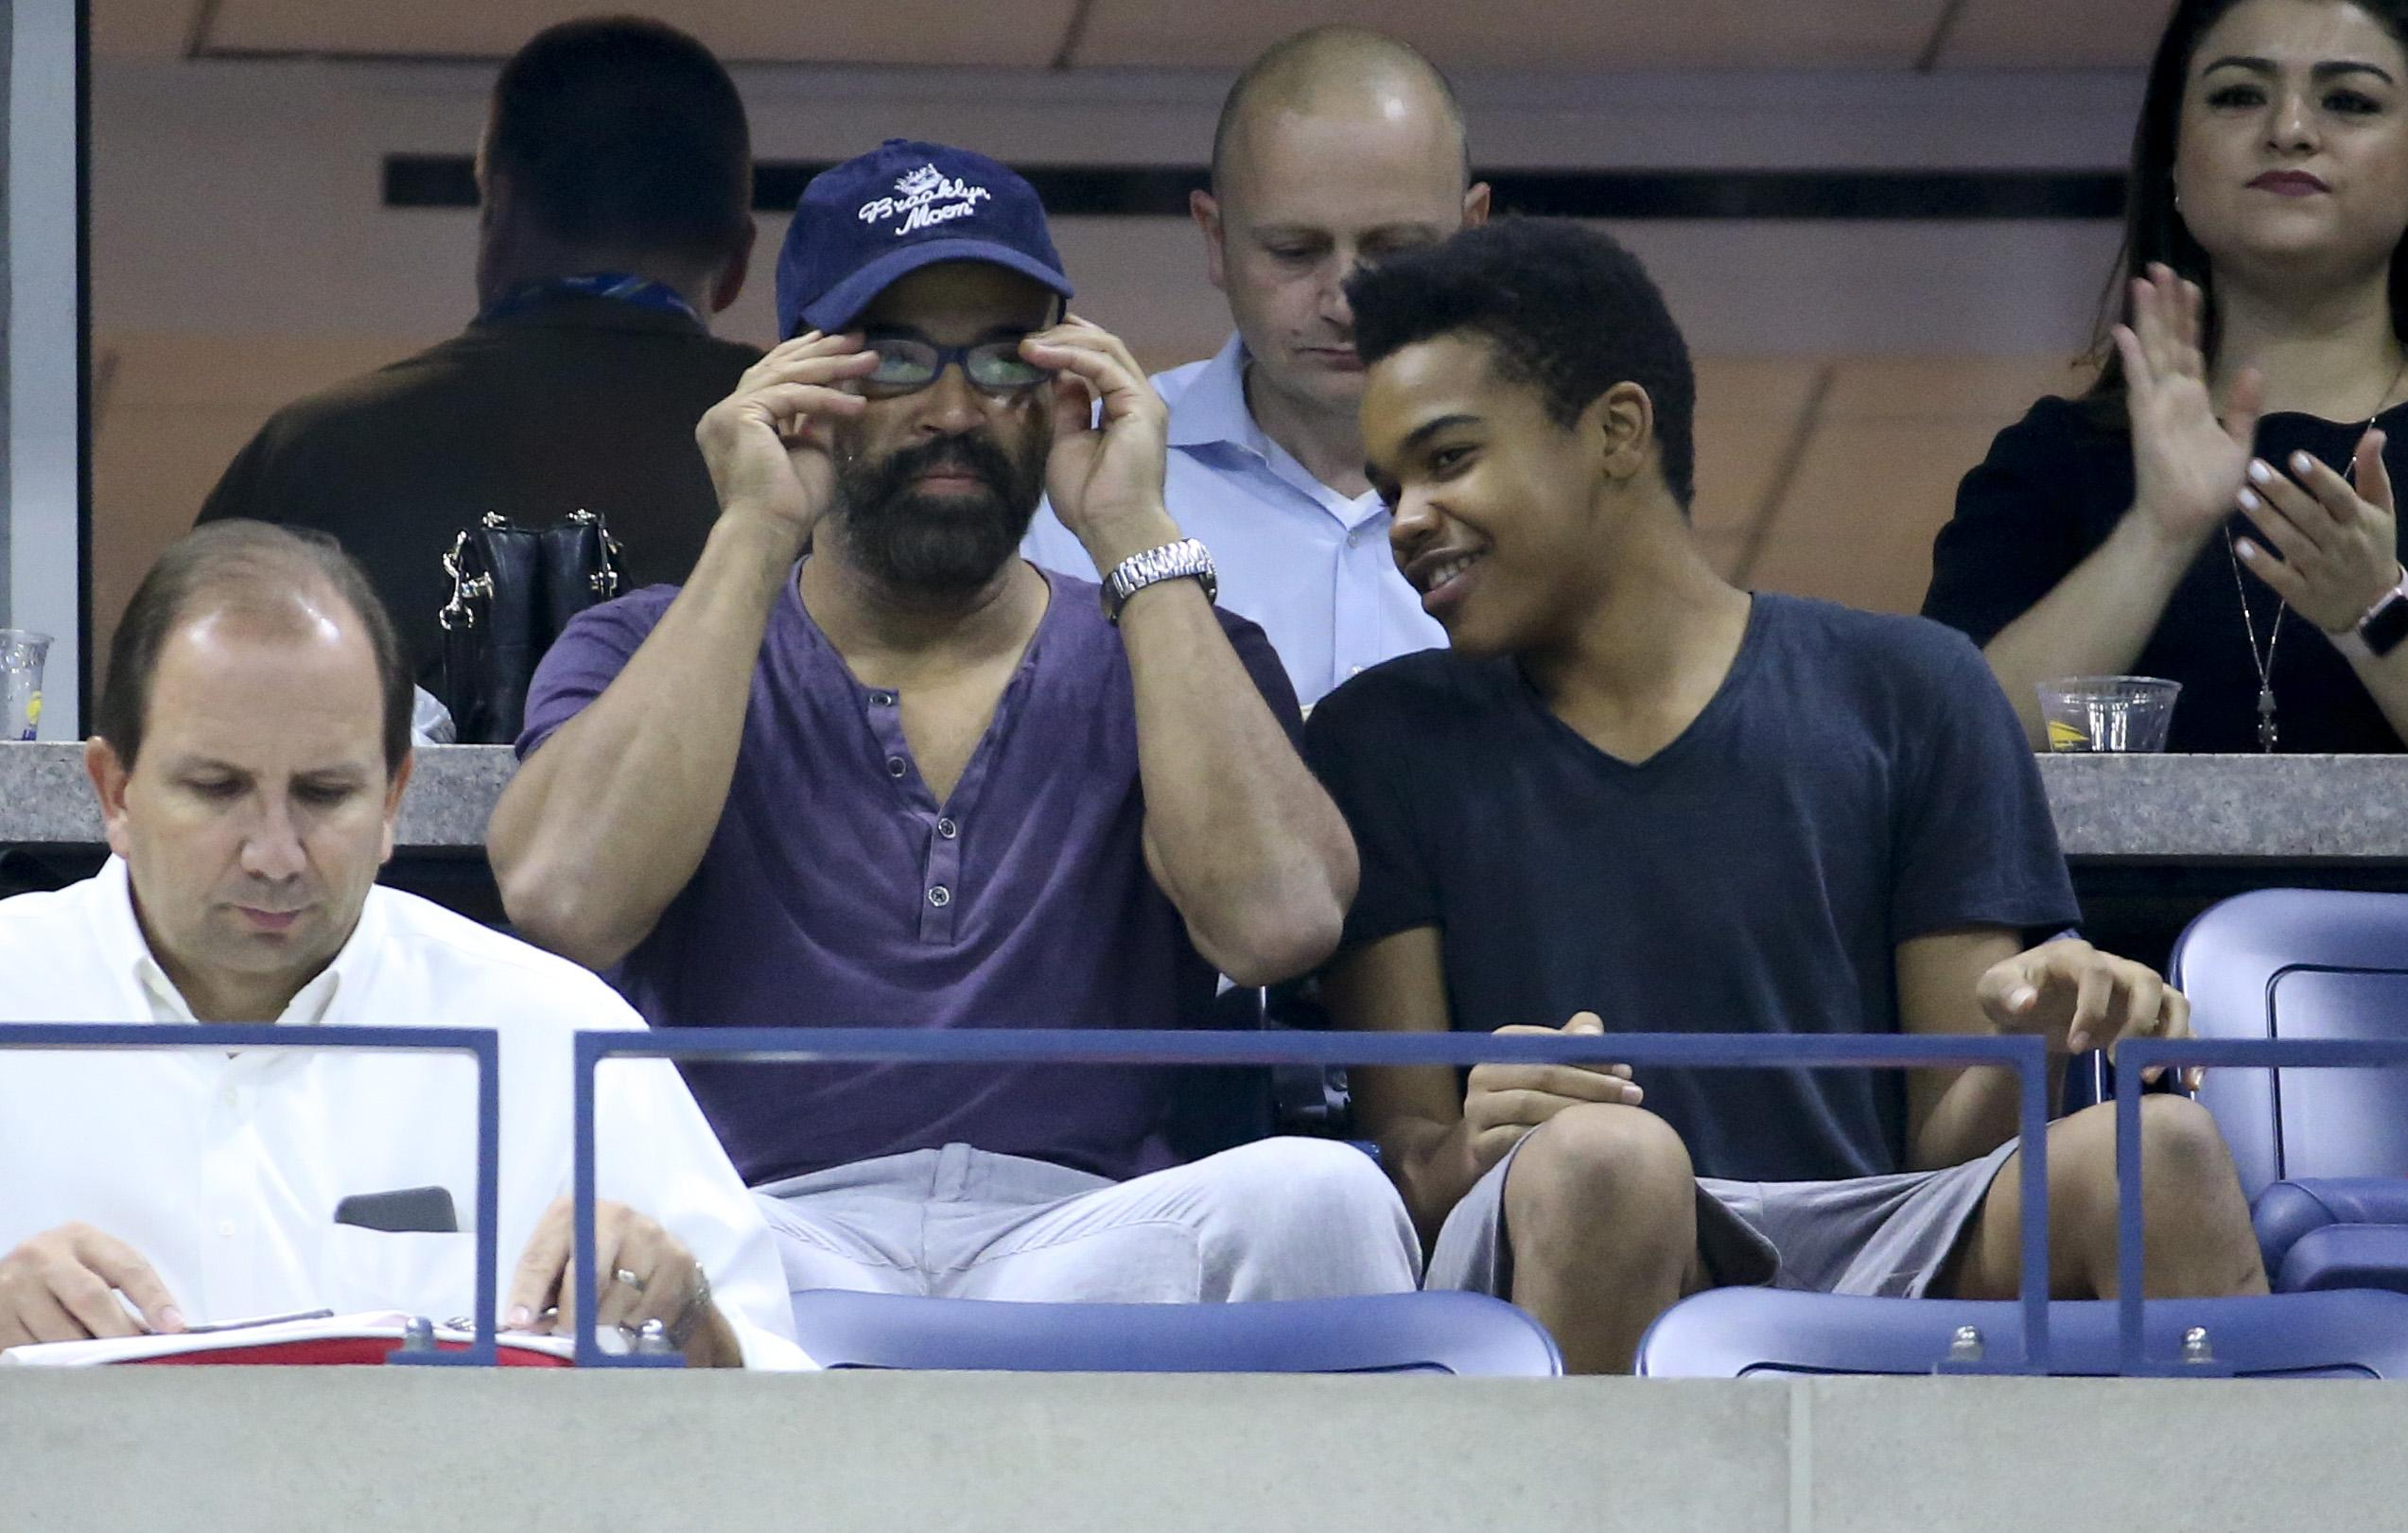 Westworld actor Jeffrey Wright also watched the action